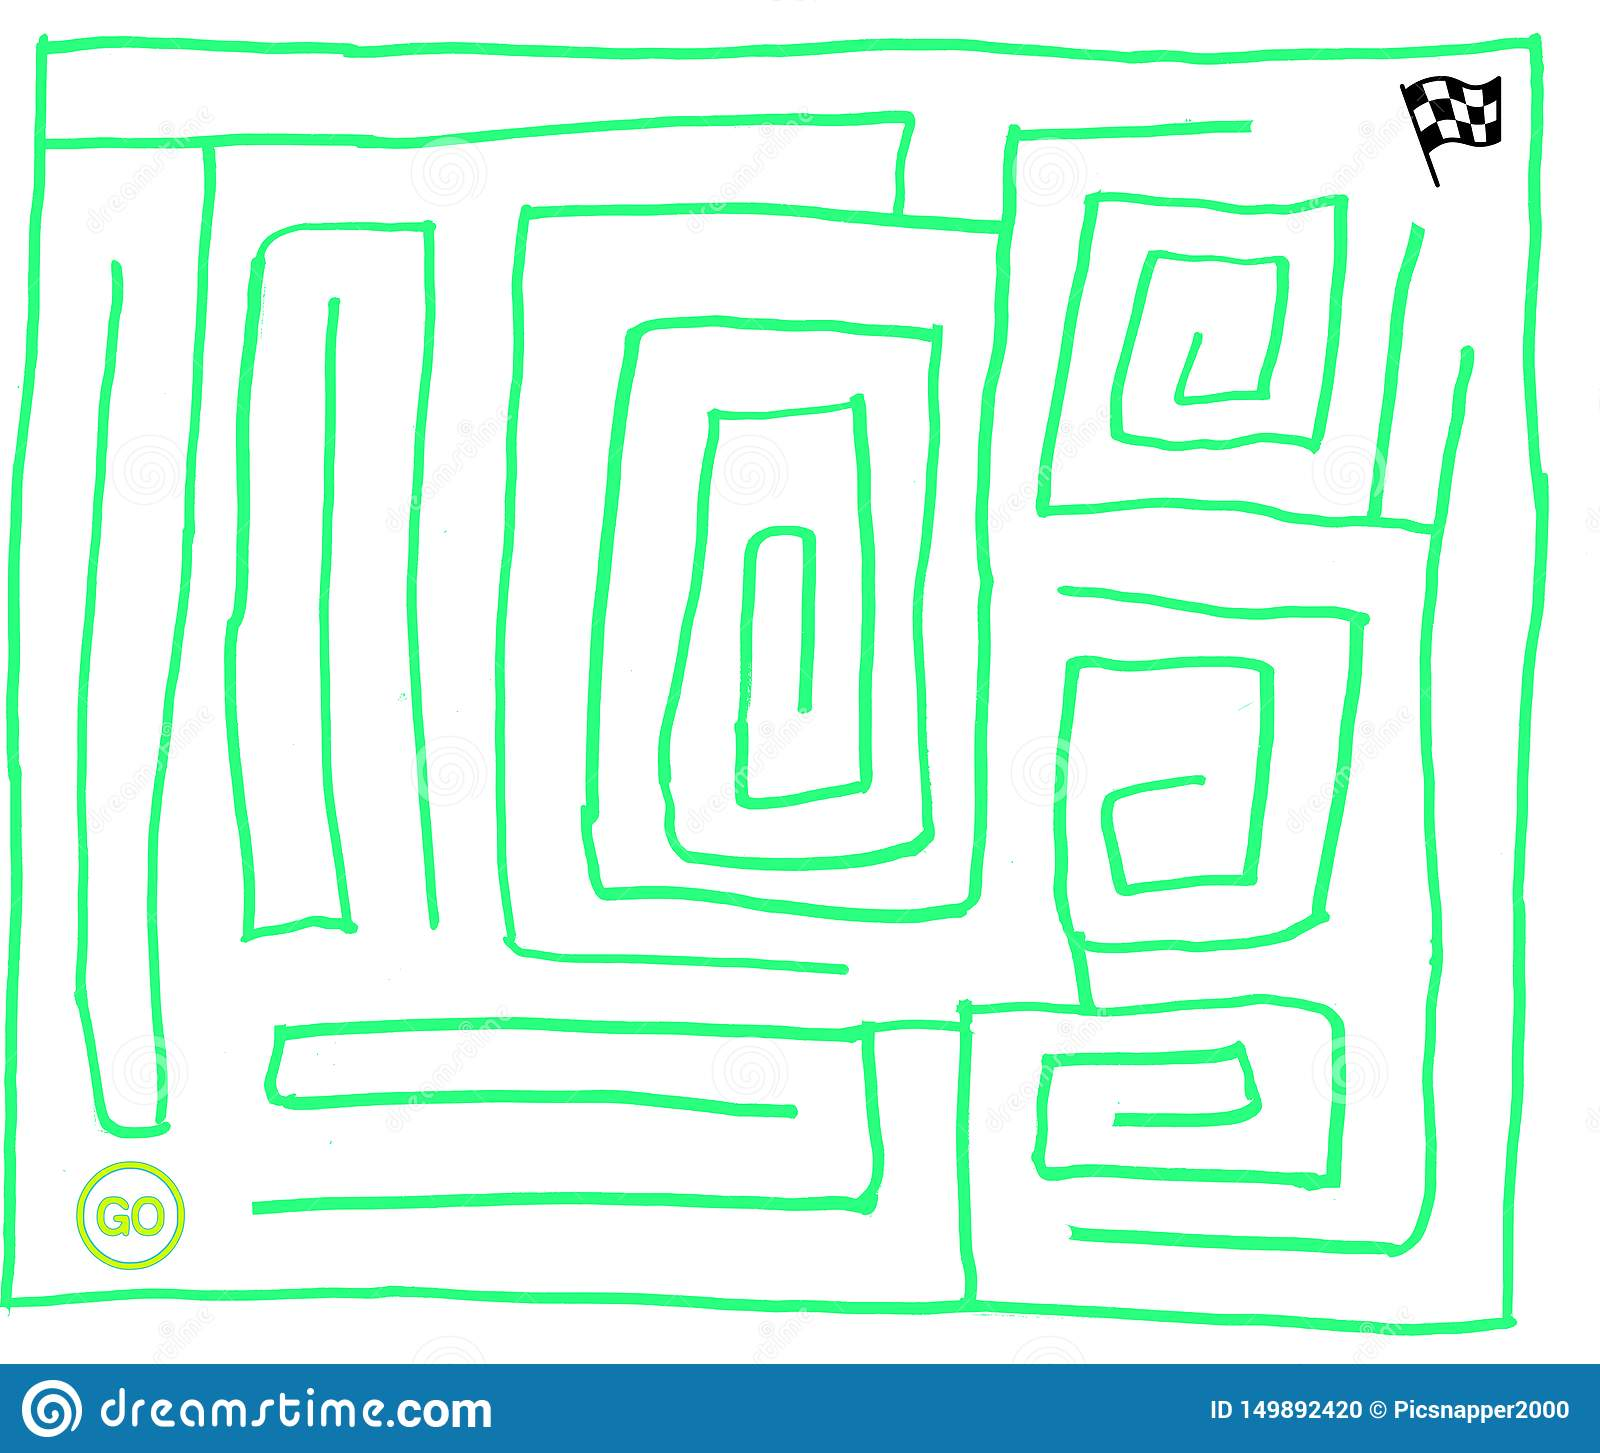 Maze number seven, very easy, fluorescent green, vector graphic